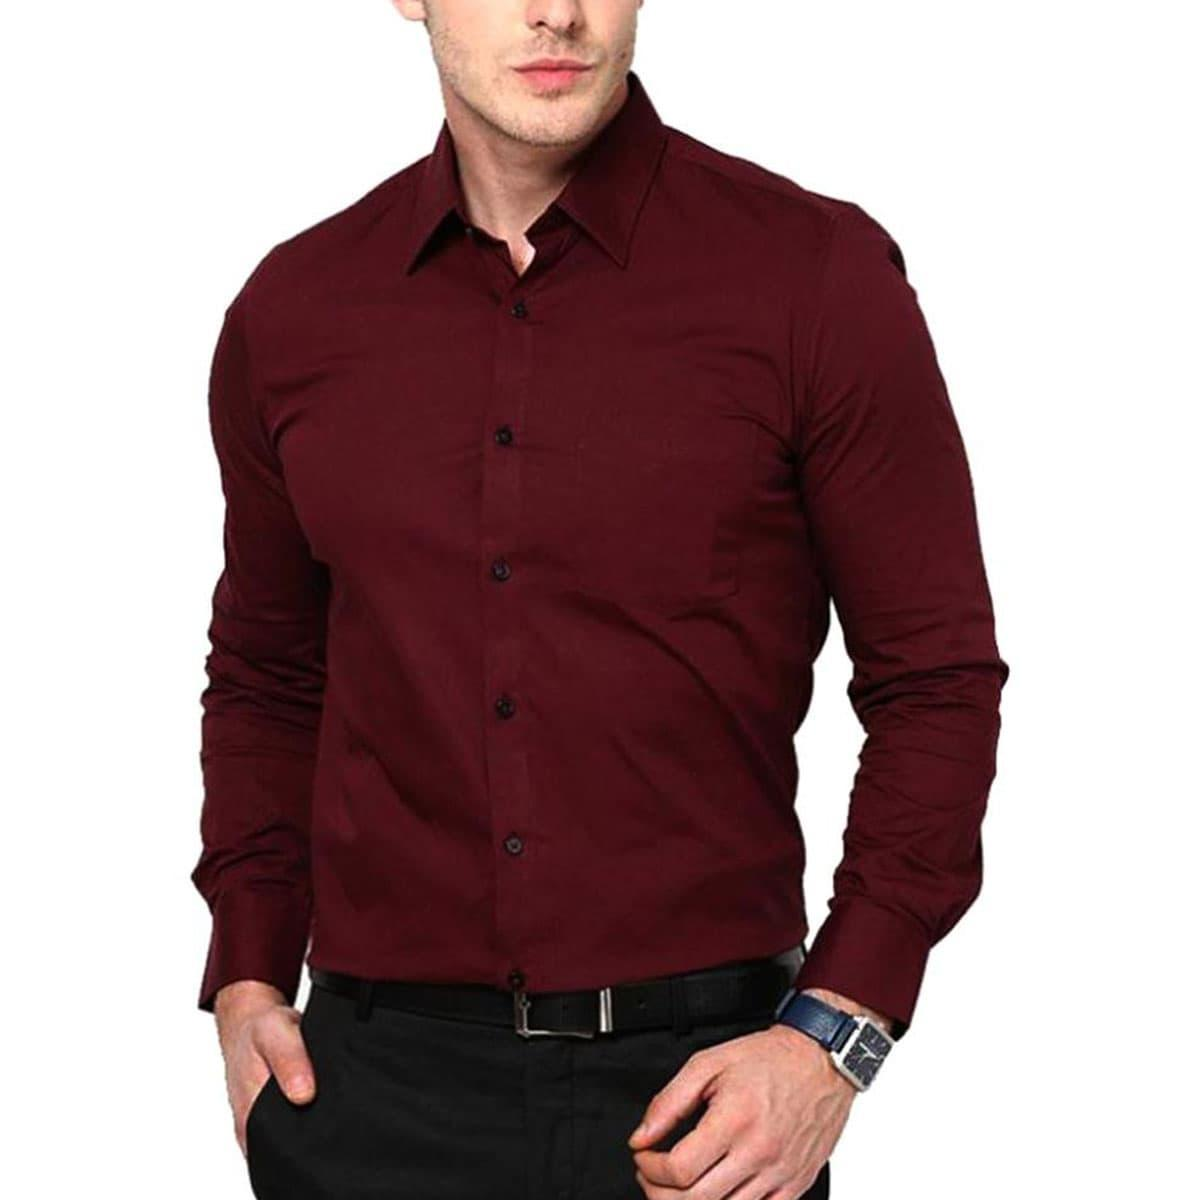 01a894030ac Dress Shirt For Men - Cotton - Maroon With brown Belt